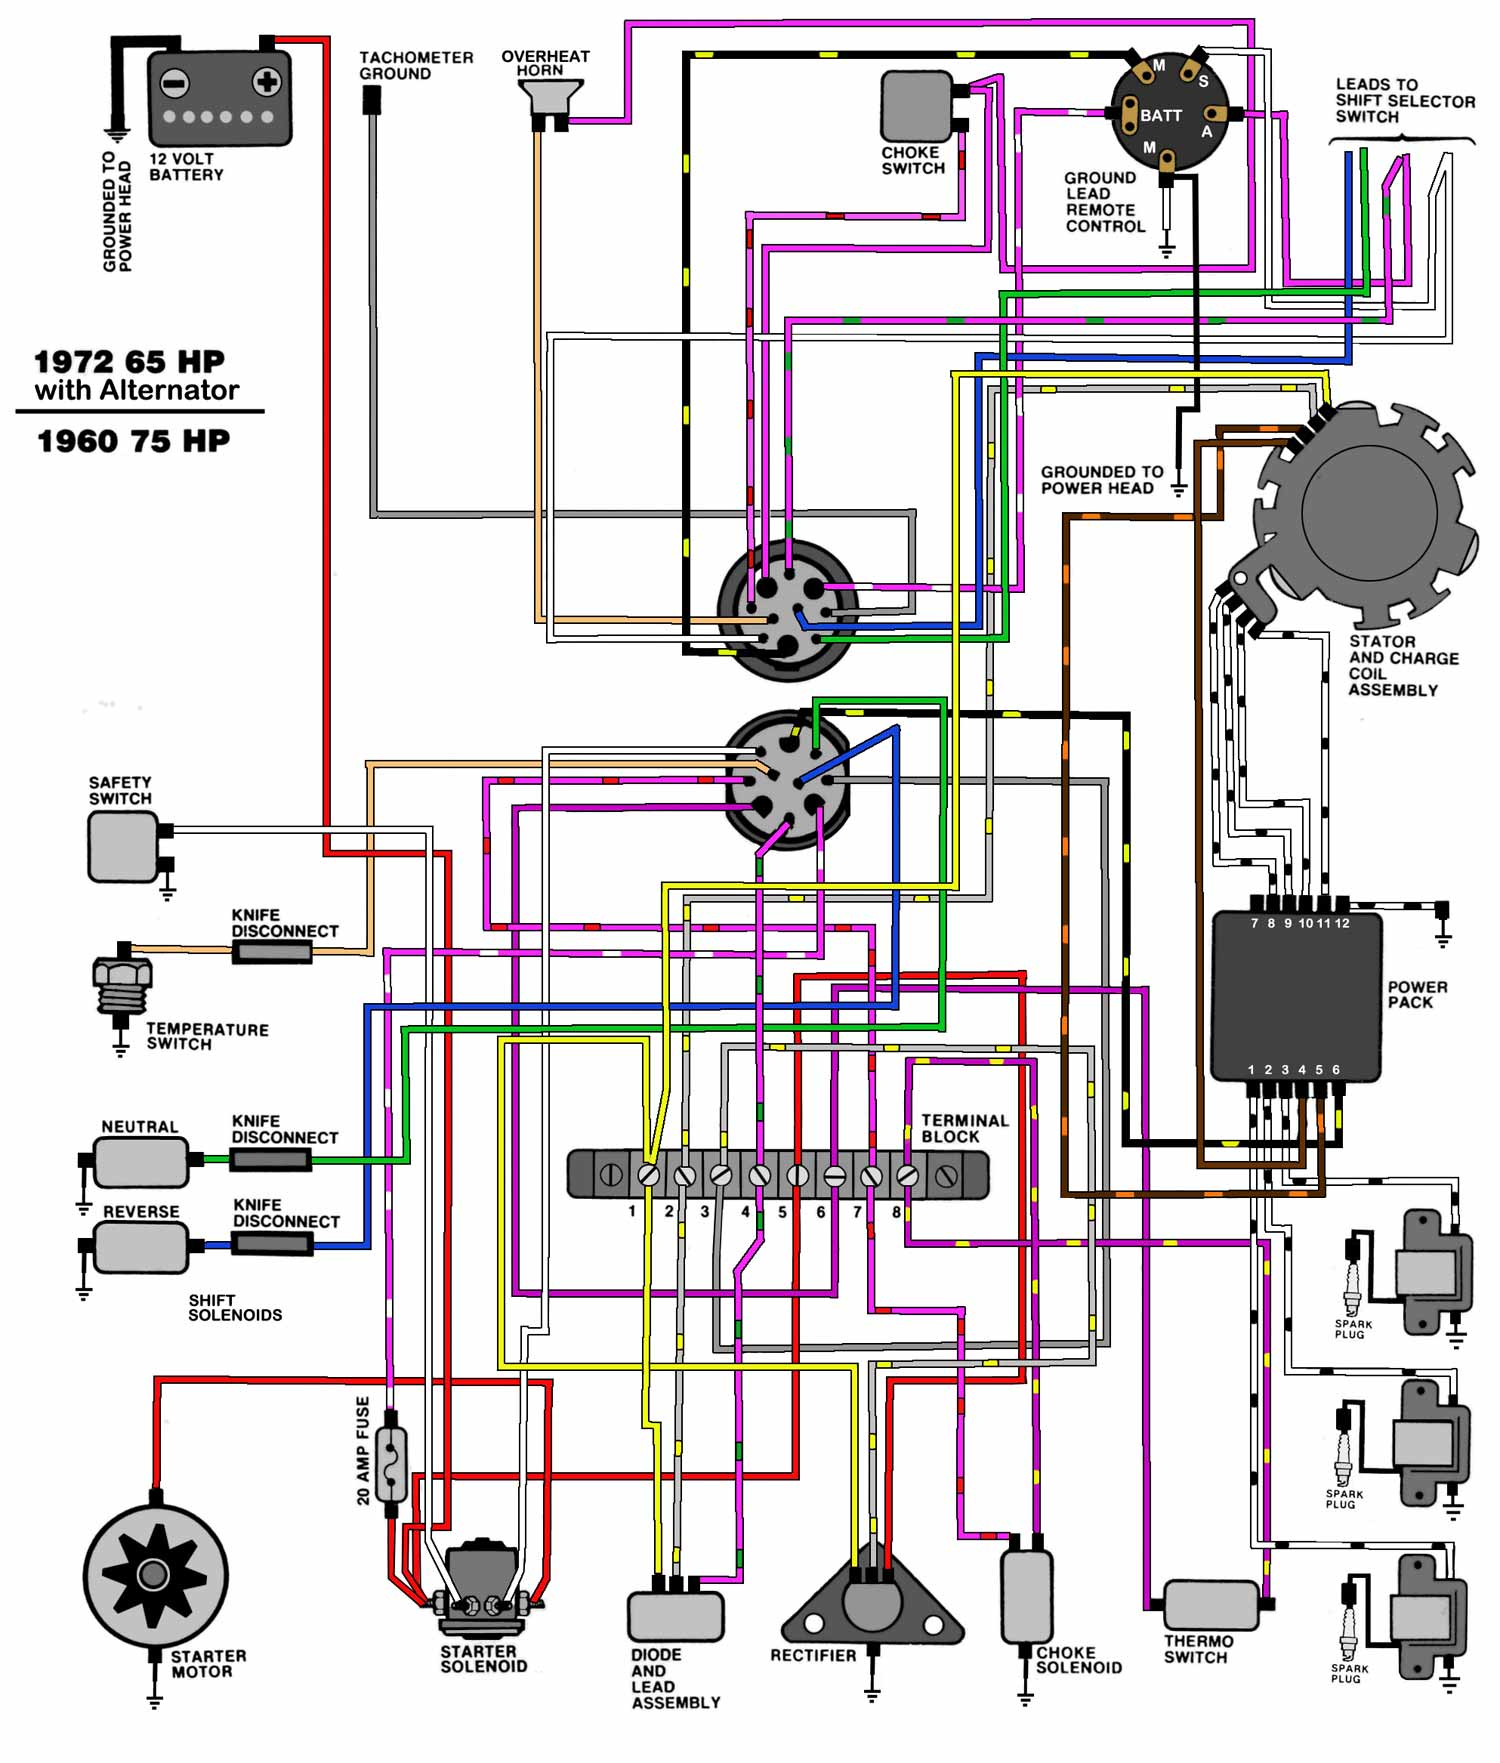 1972 Yamaha Enduro Wiring Diagram Library Dt 125 Have A Evinrude 65 Hp Engine That Quits After About 5 Min On The Water 250 Wire Schematic Opinions